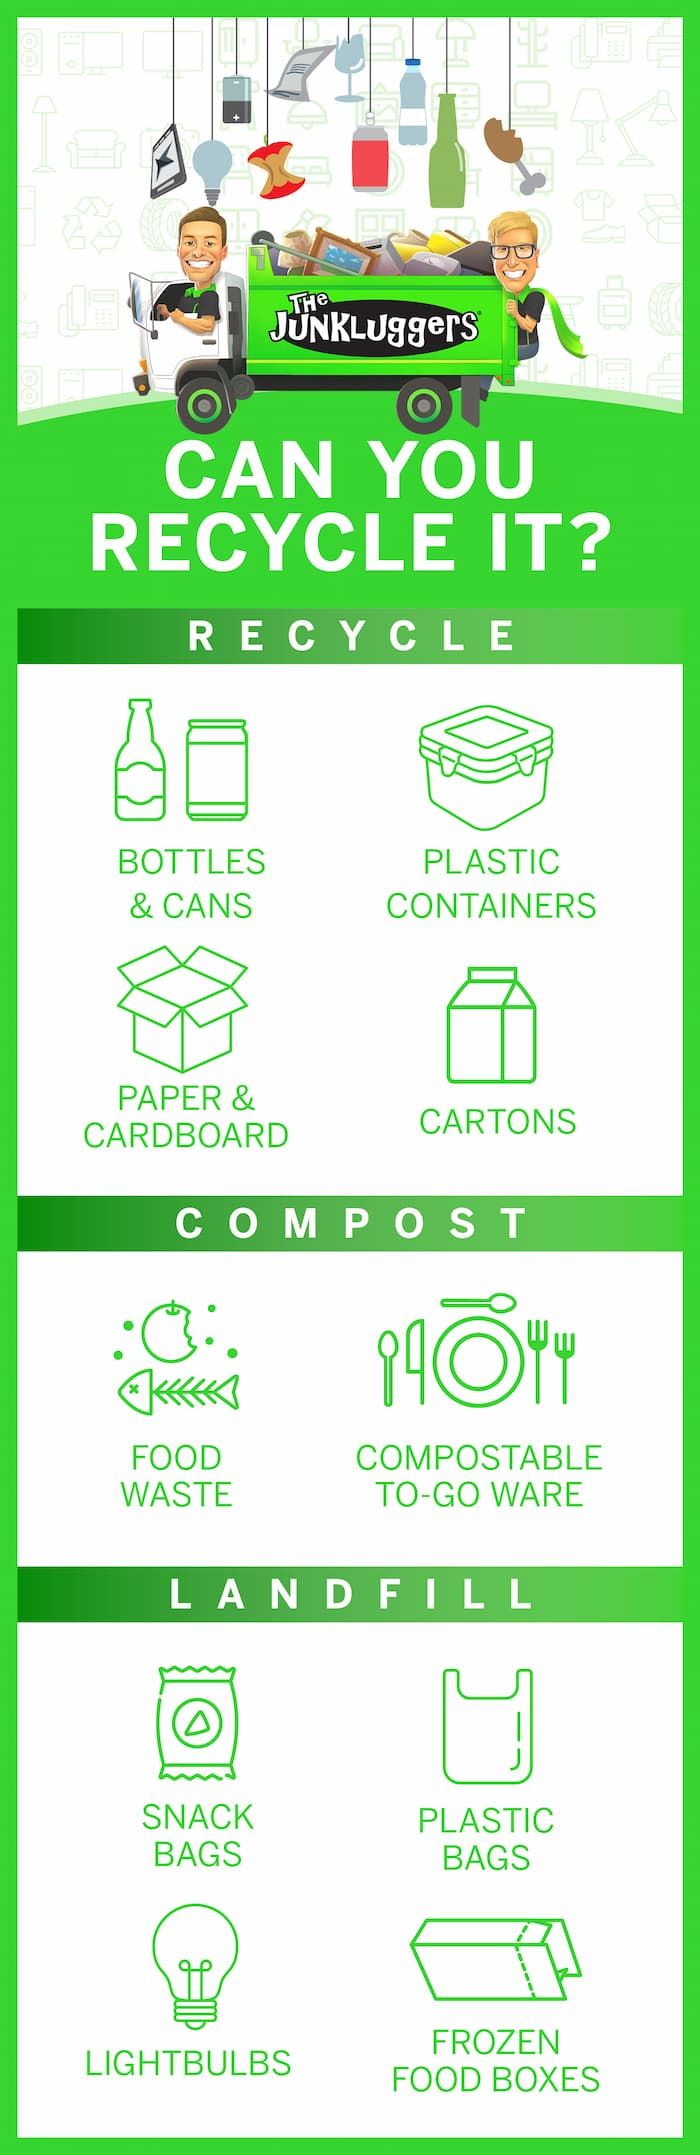 Can you recycle it?